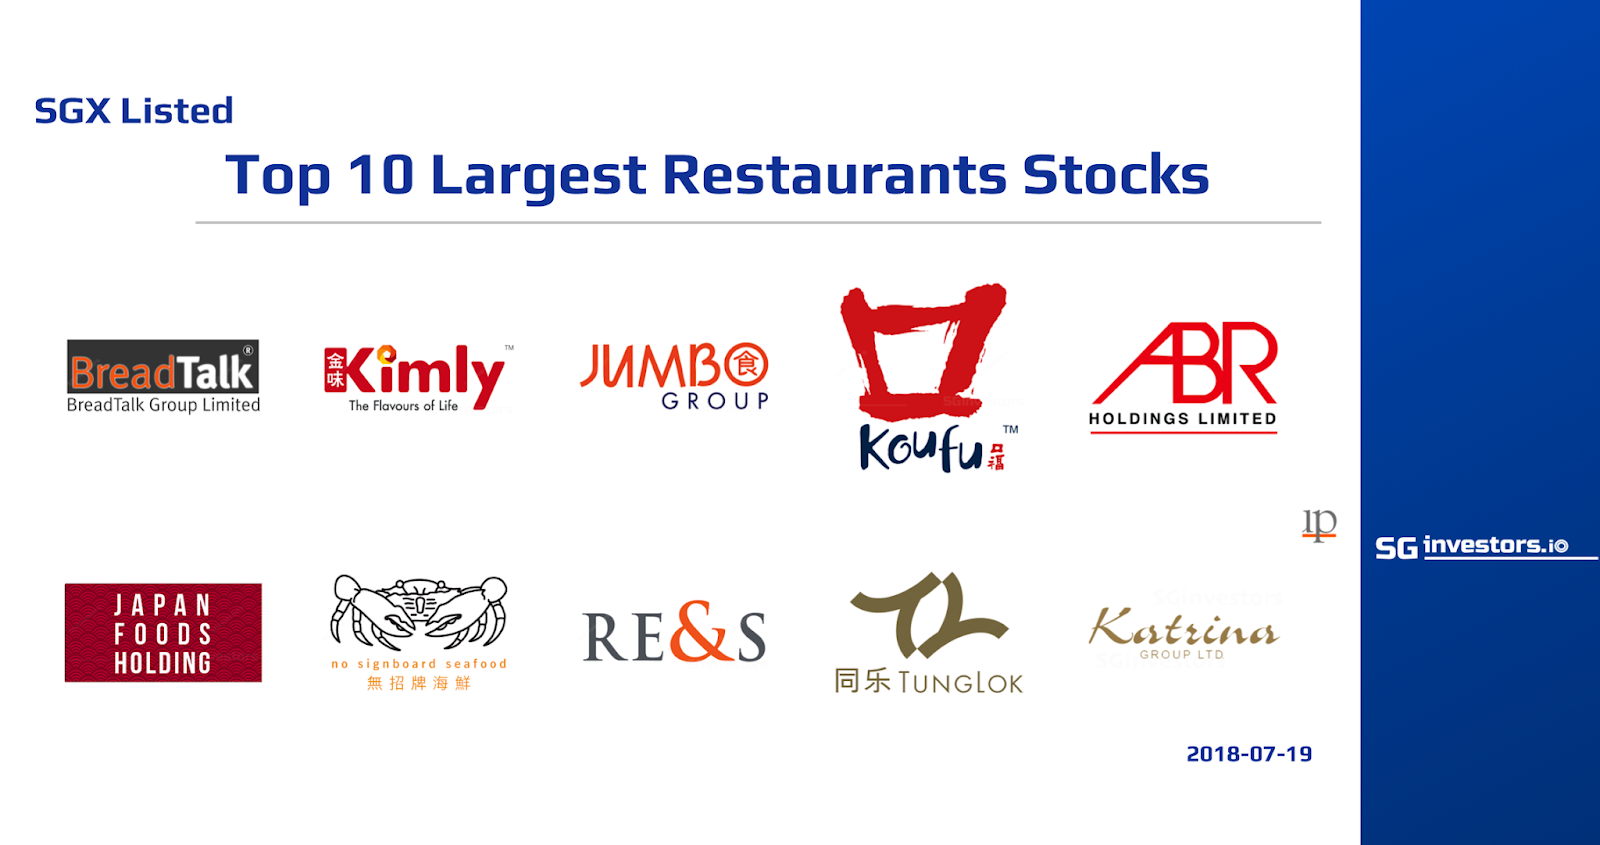 SGX's 10 Largest Restaurants Stocks Offer Local & Overseas Exposure